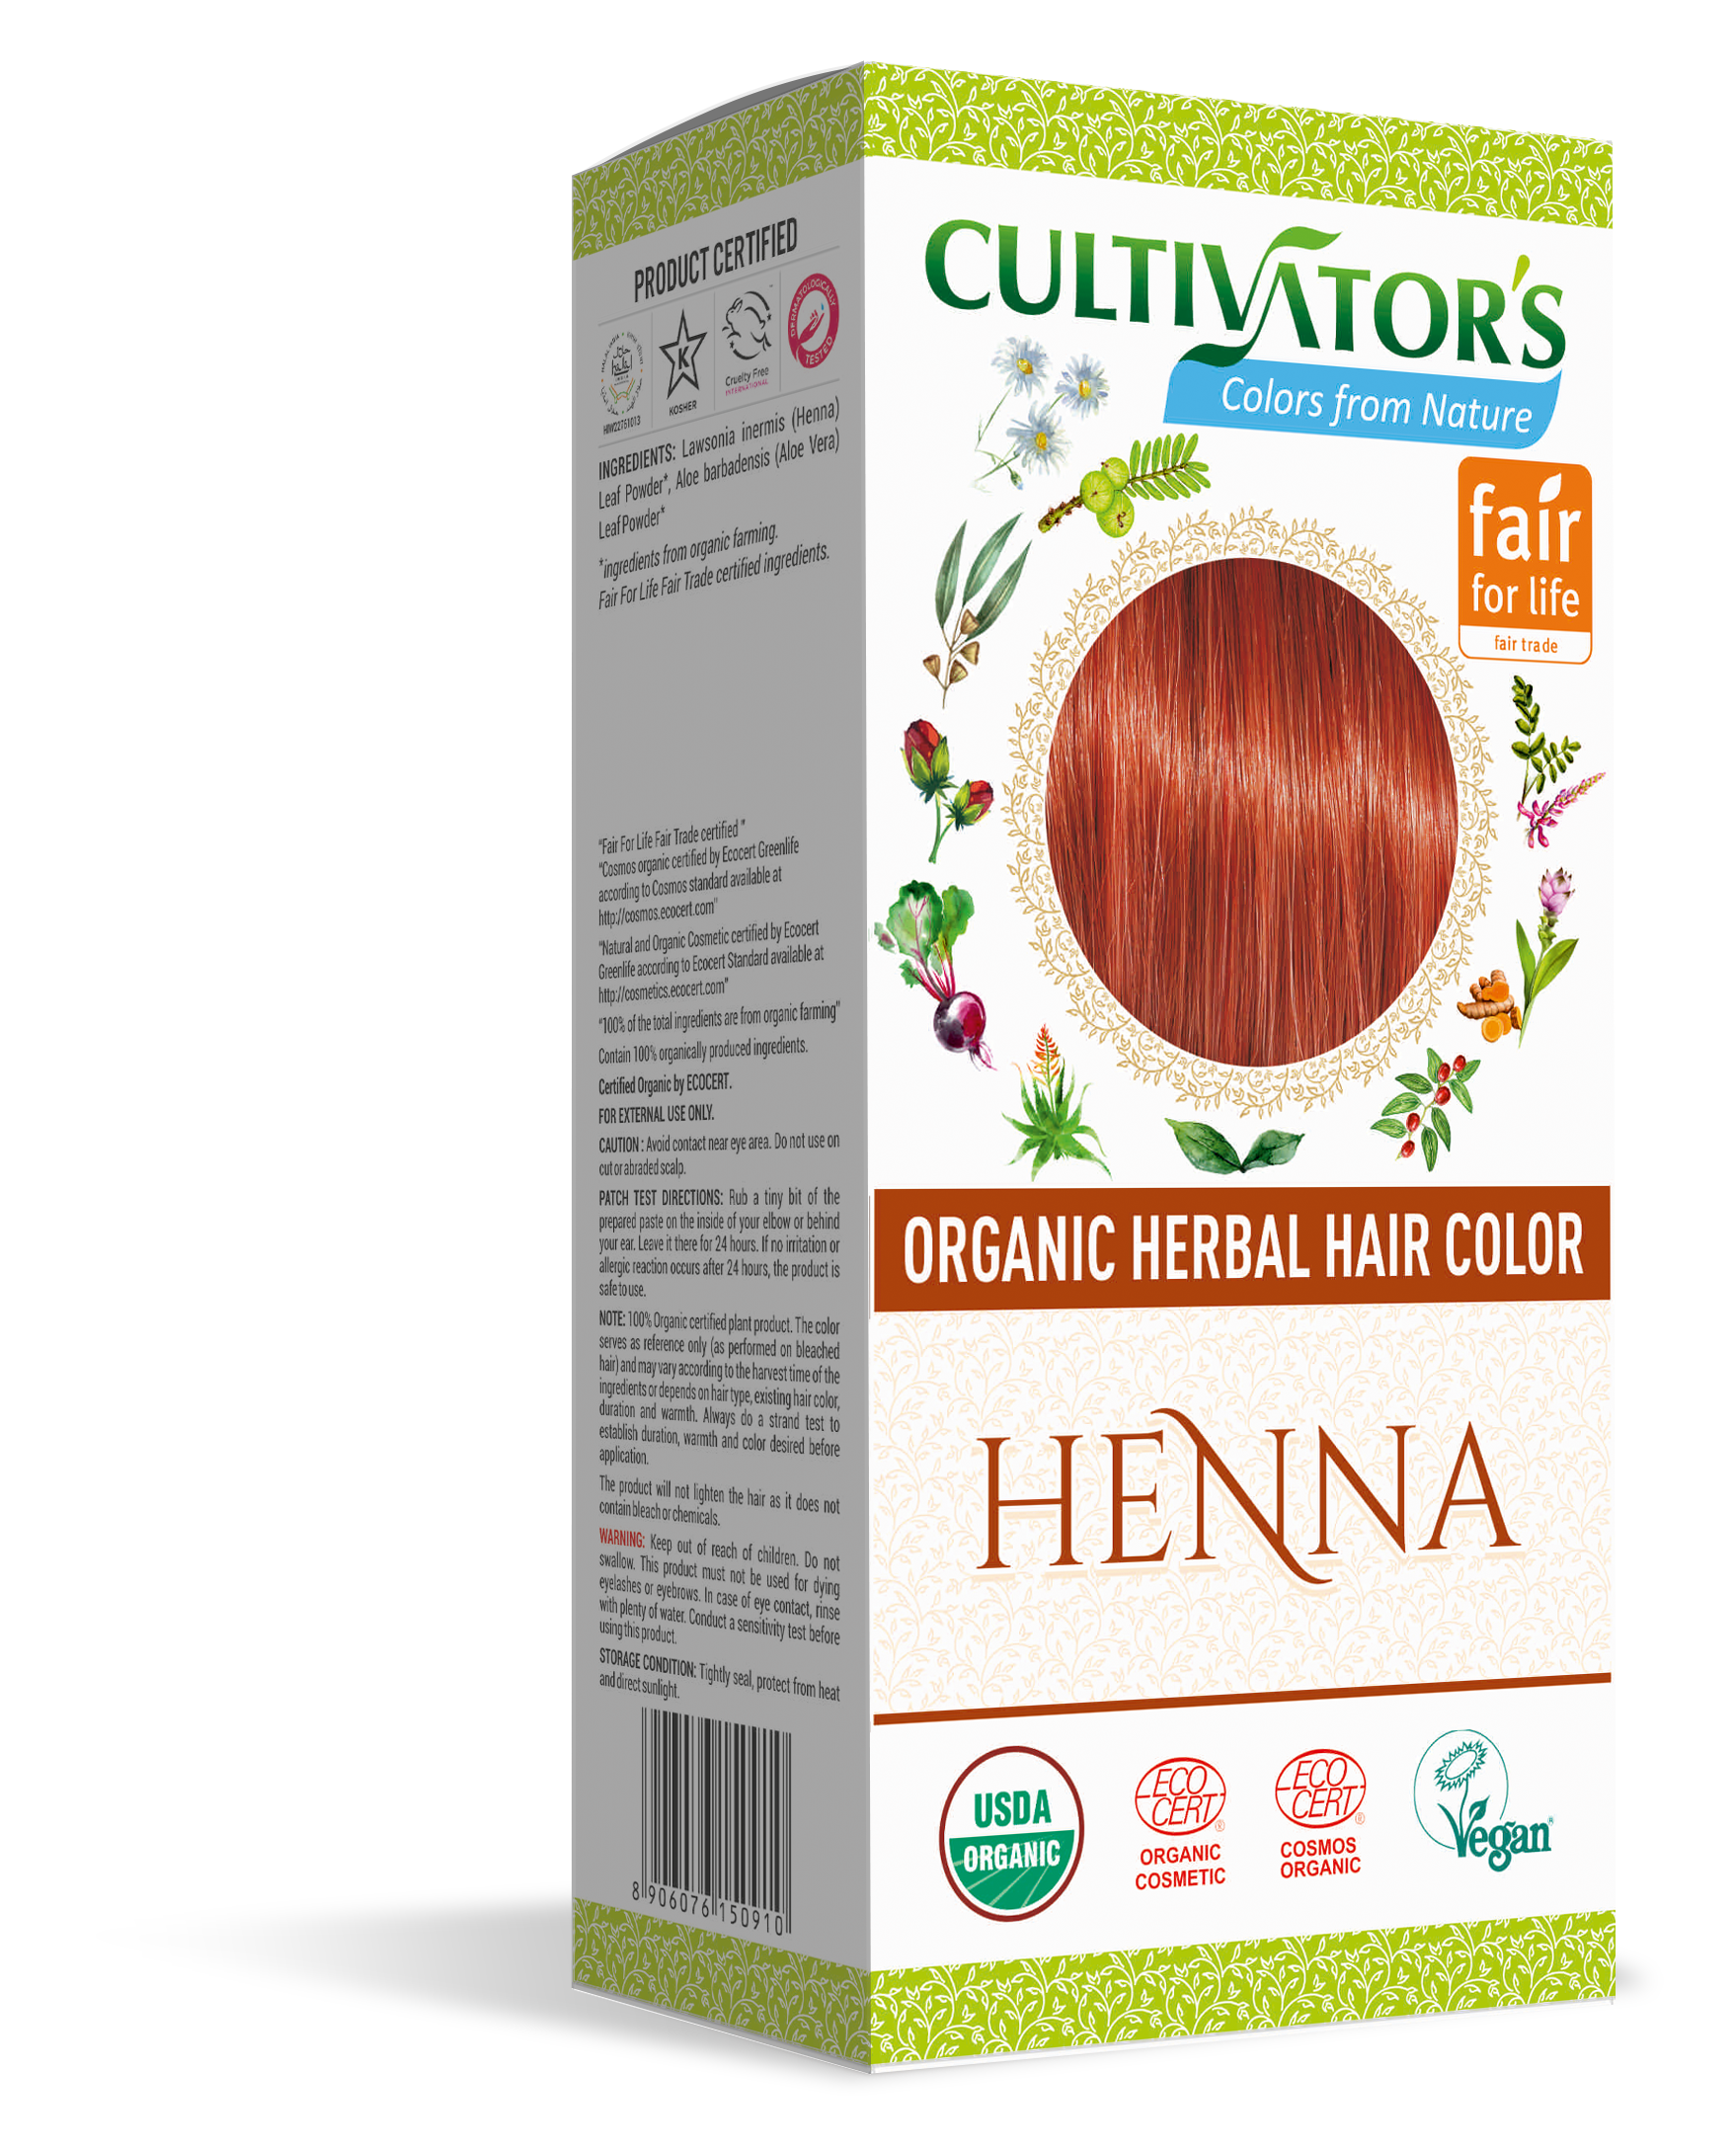 ORGANIC HERBAL HAIR COLOR HENNA